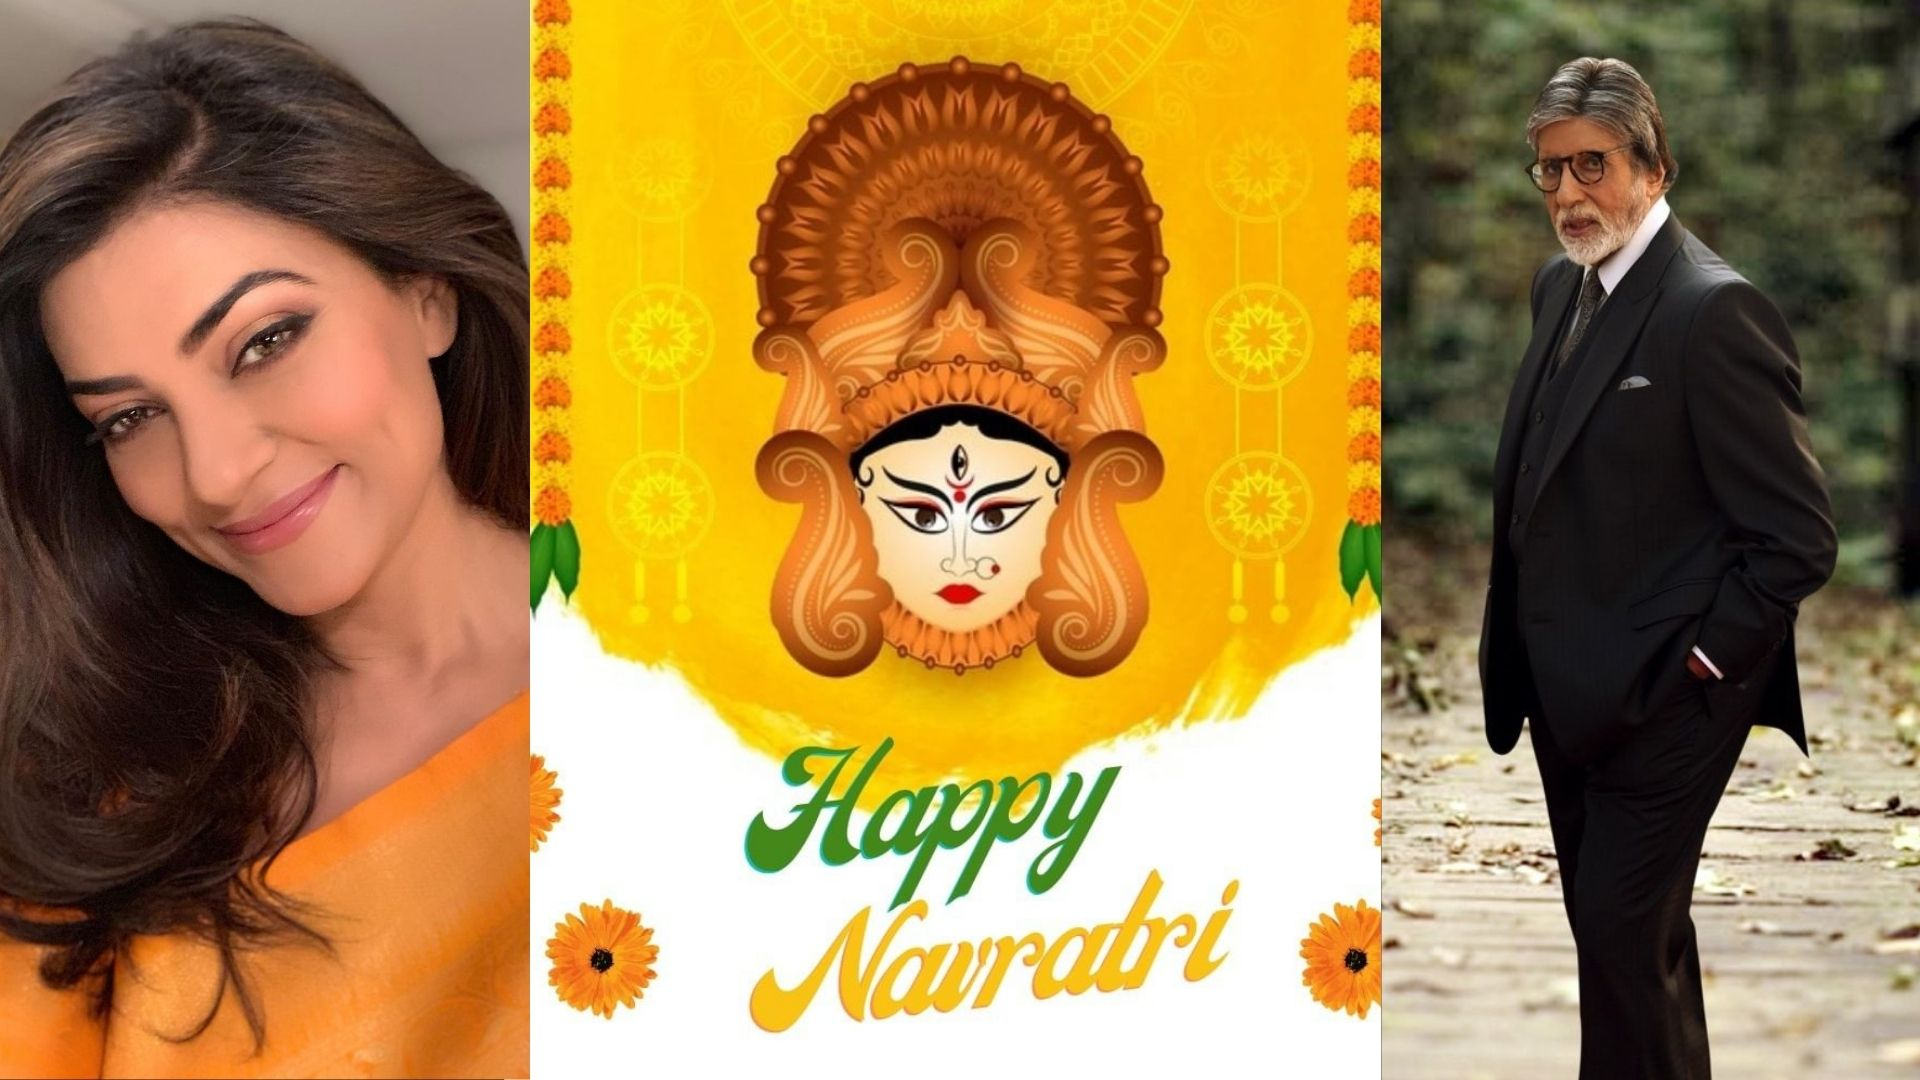 Navratri 2021: Amitabh Bachchan, Sushmita Sen, Sanjay Dutt And Anupam Kher Among Others Extend Their Wishes On The Holy Festival